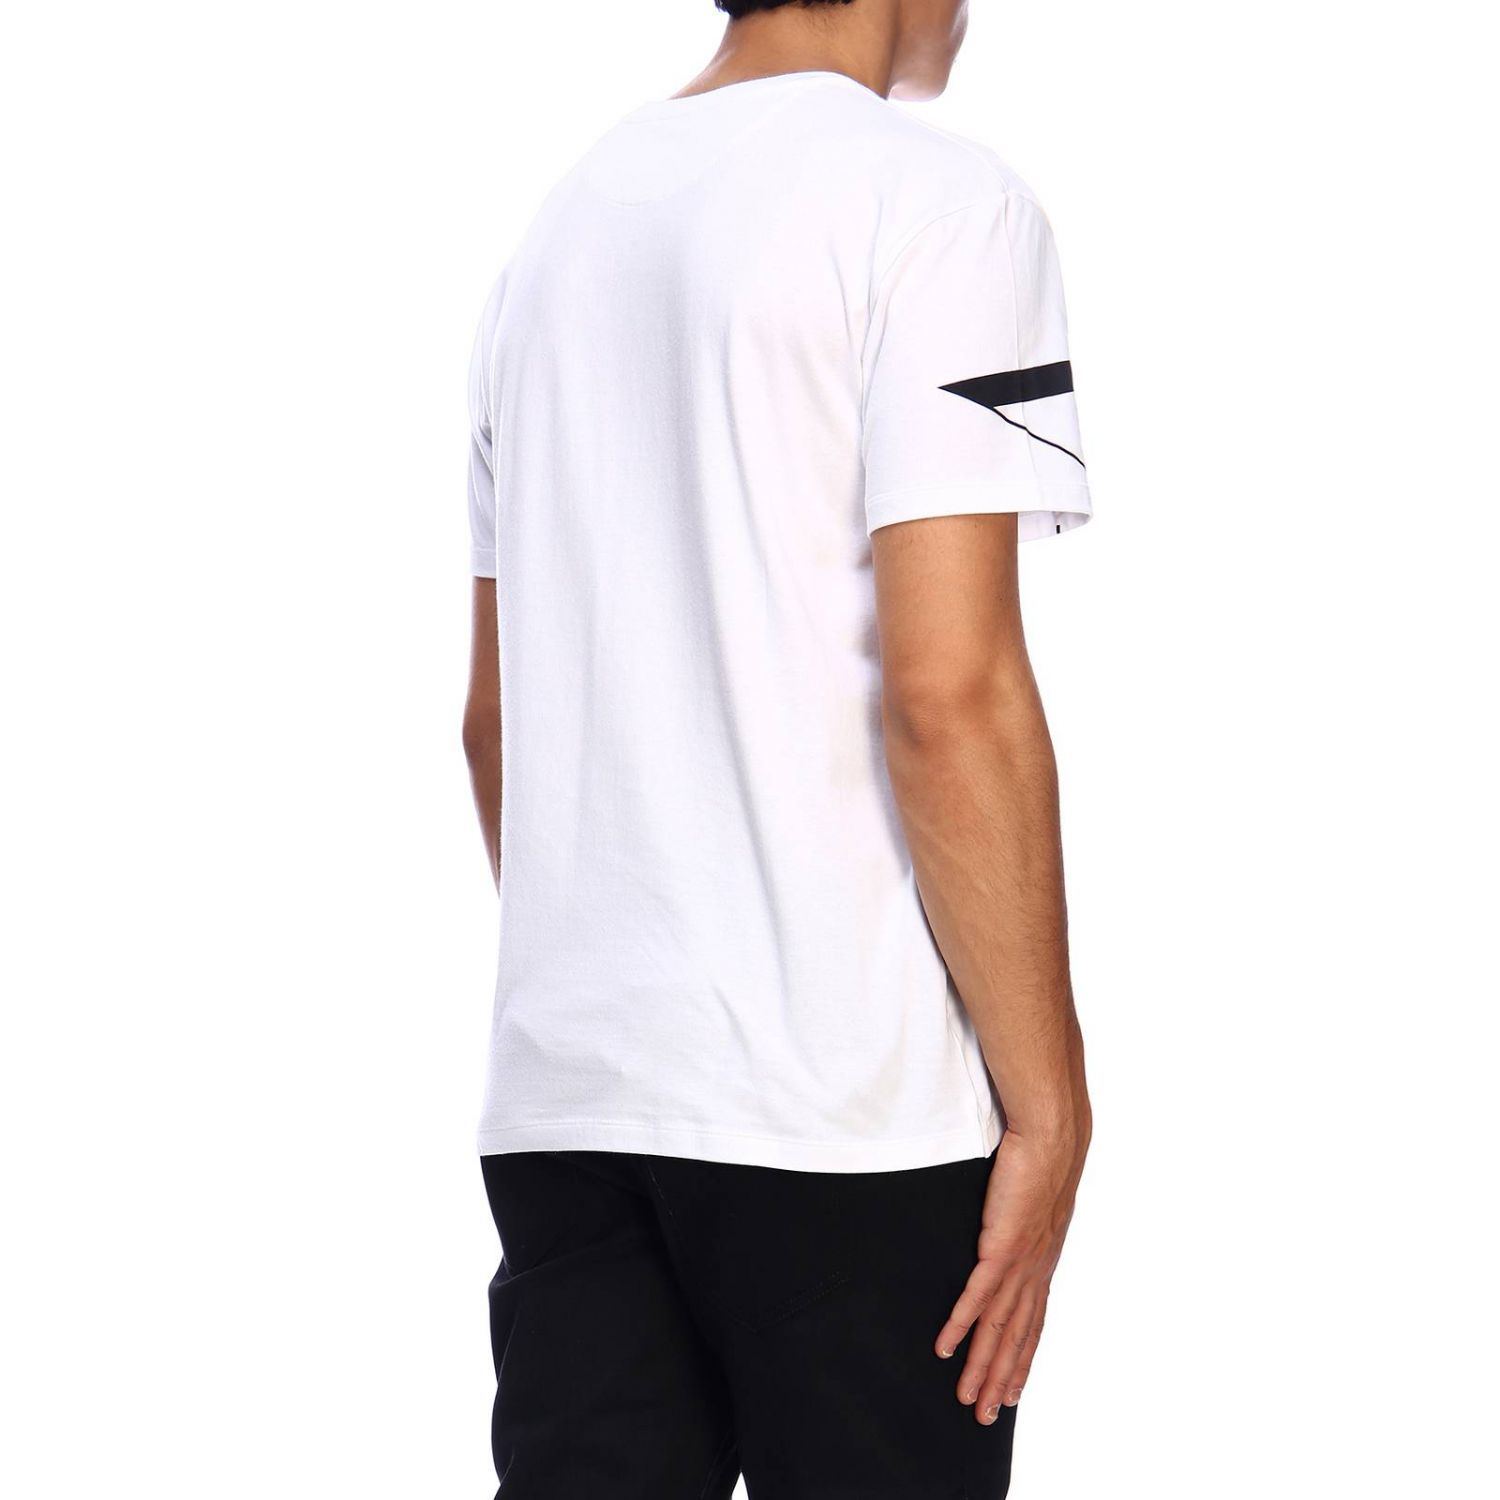 T-shirt Valentino: Valentino short-sleeved T-shirt with VLTN print white 3